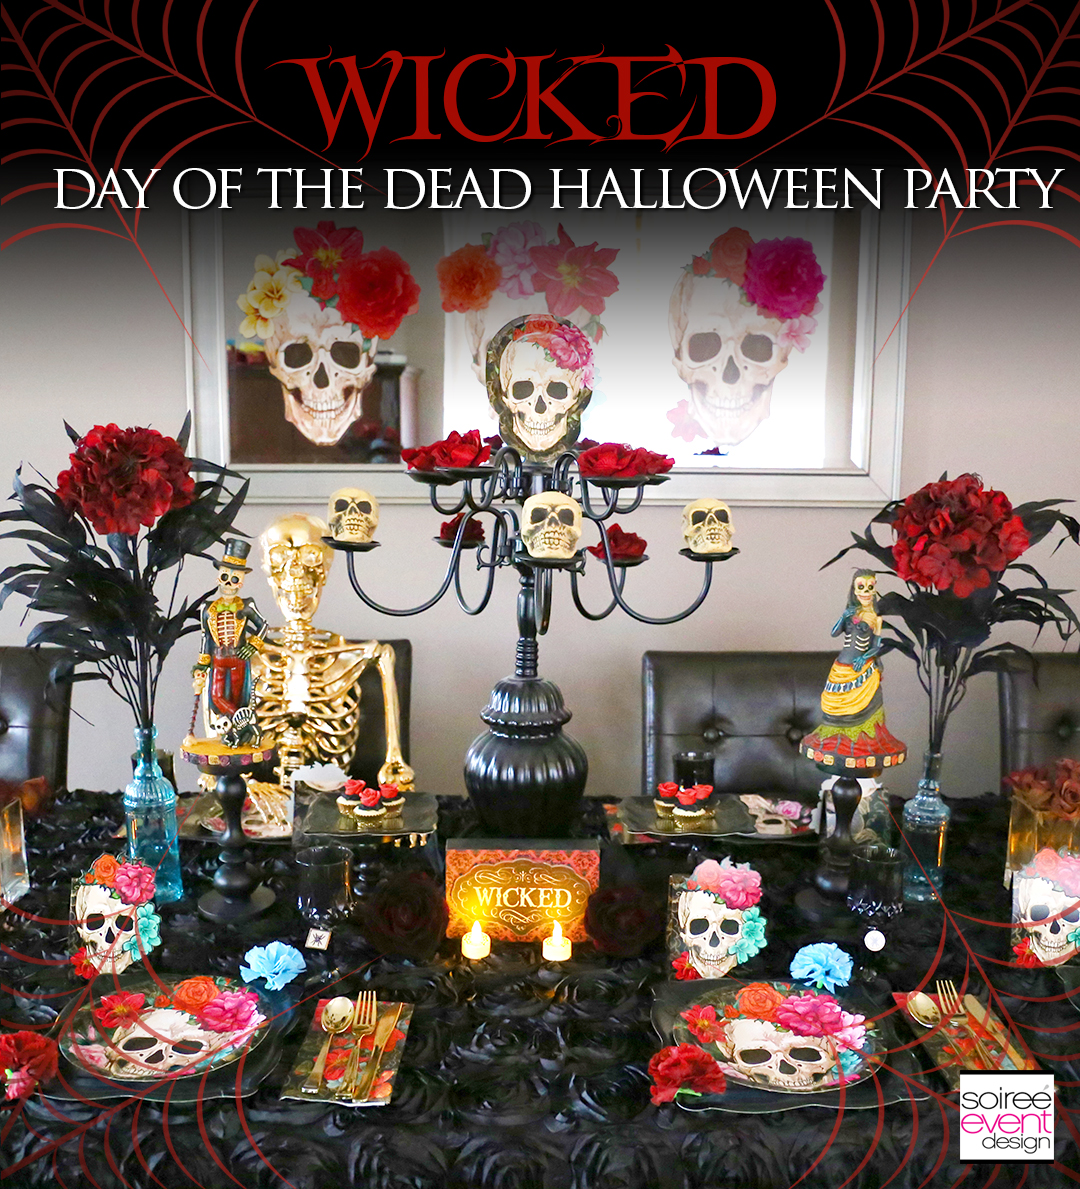 Day of the Dead Party Ideas - Soiree Event Design